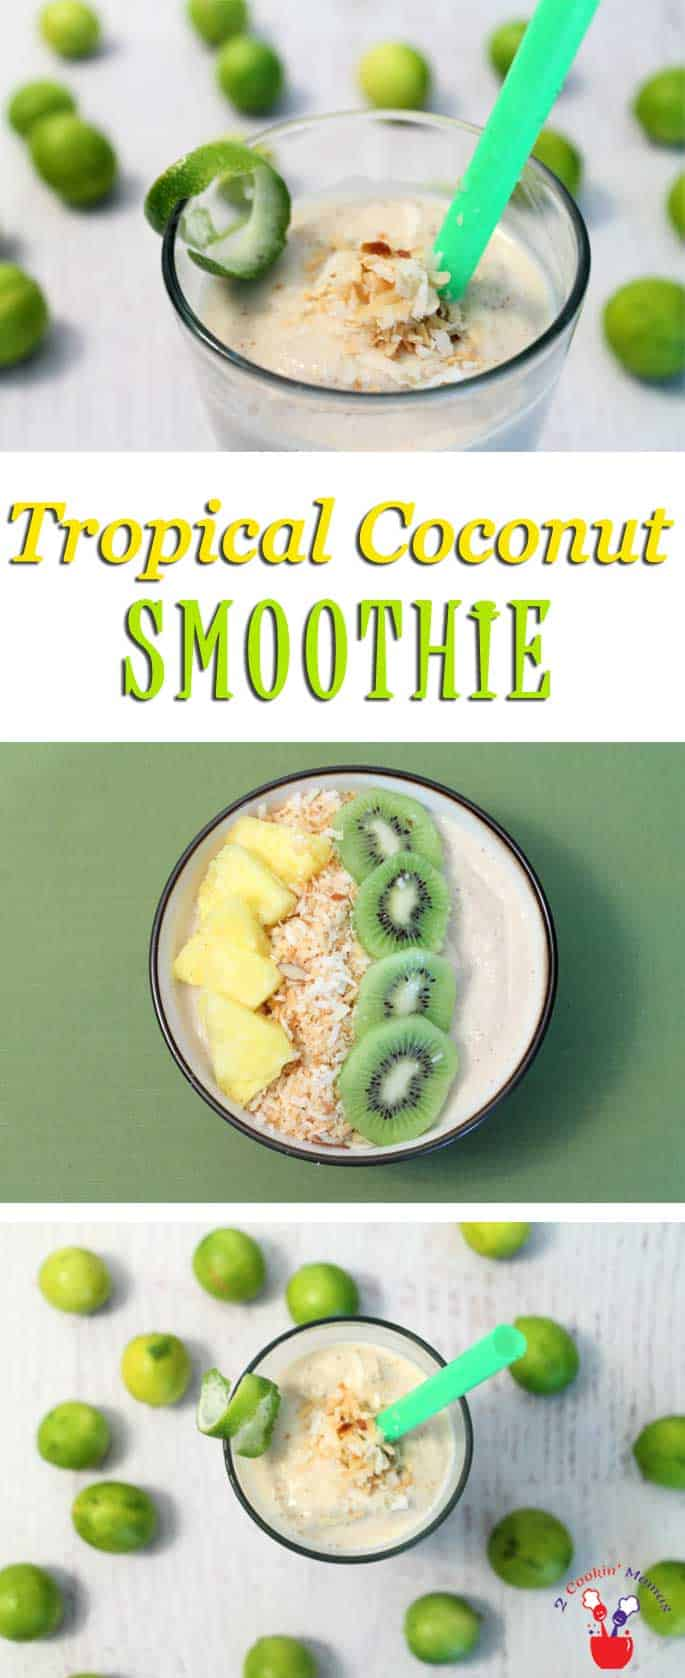 Tropical Coconut Smoothie pin 2 | 2 Cookin Mamas Our Tropical Coconut Smoothie is an energy boosting, healthy smoothie with all the flavors of the islands. Think coconut, pineapple, banana & limes. Yum!